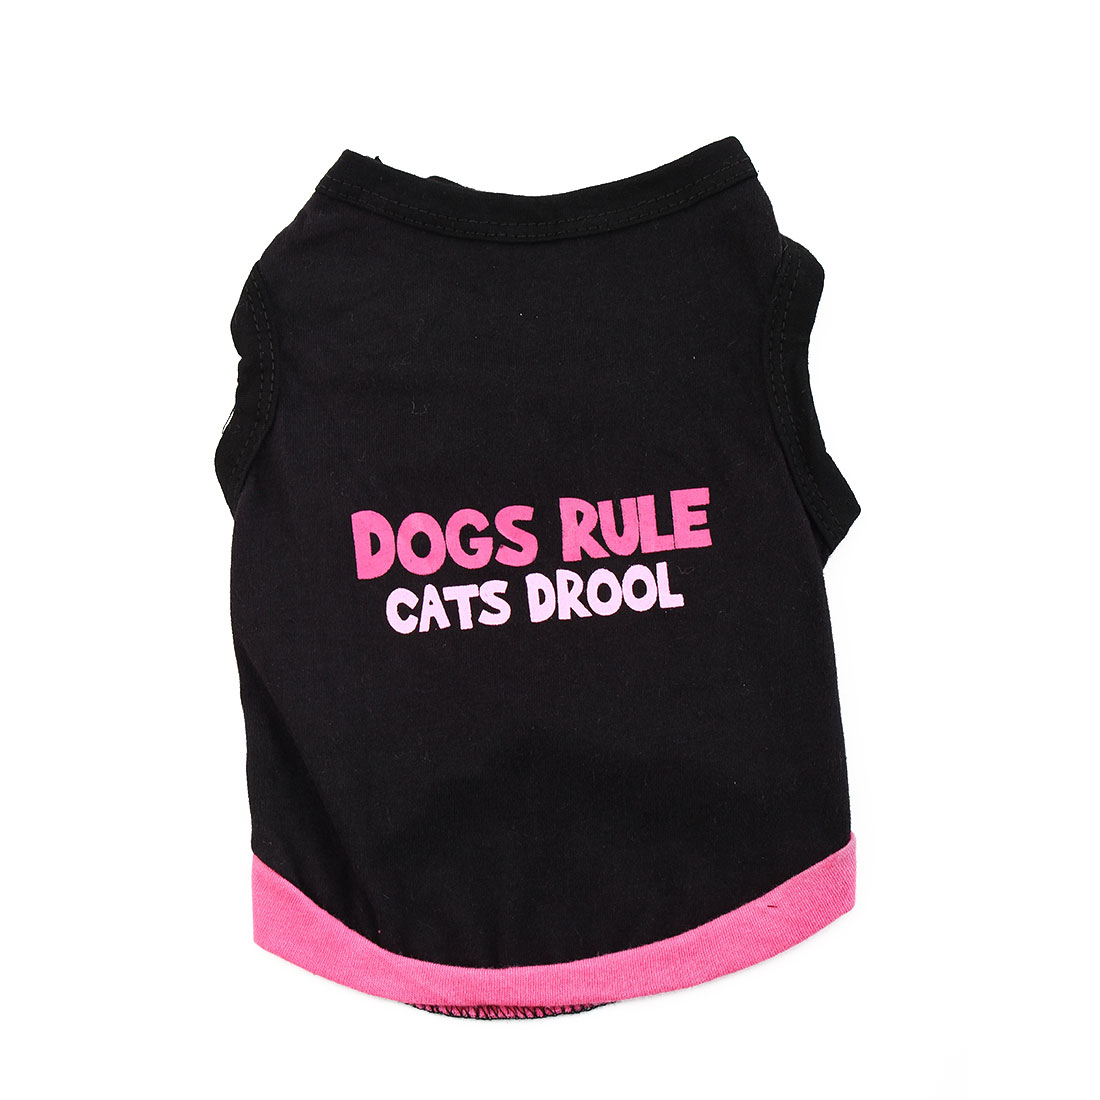 Summer Coat Puppy Costume Pet Clothes Clothing Small Dog Cat Vest T-shirt Tee Black Size XS